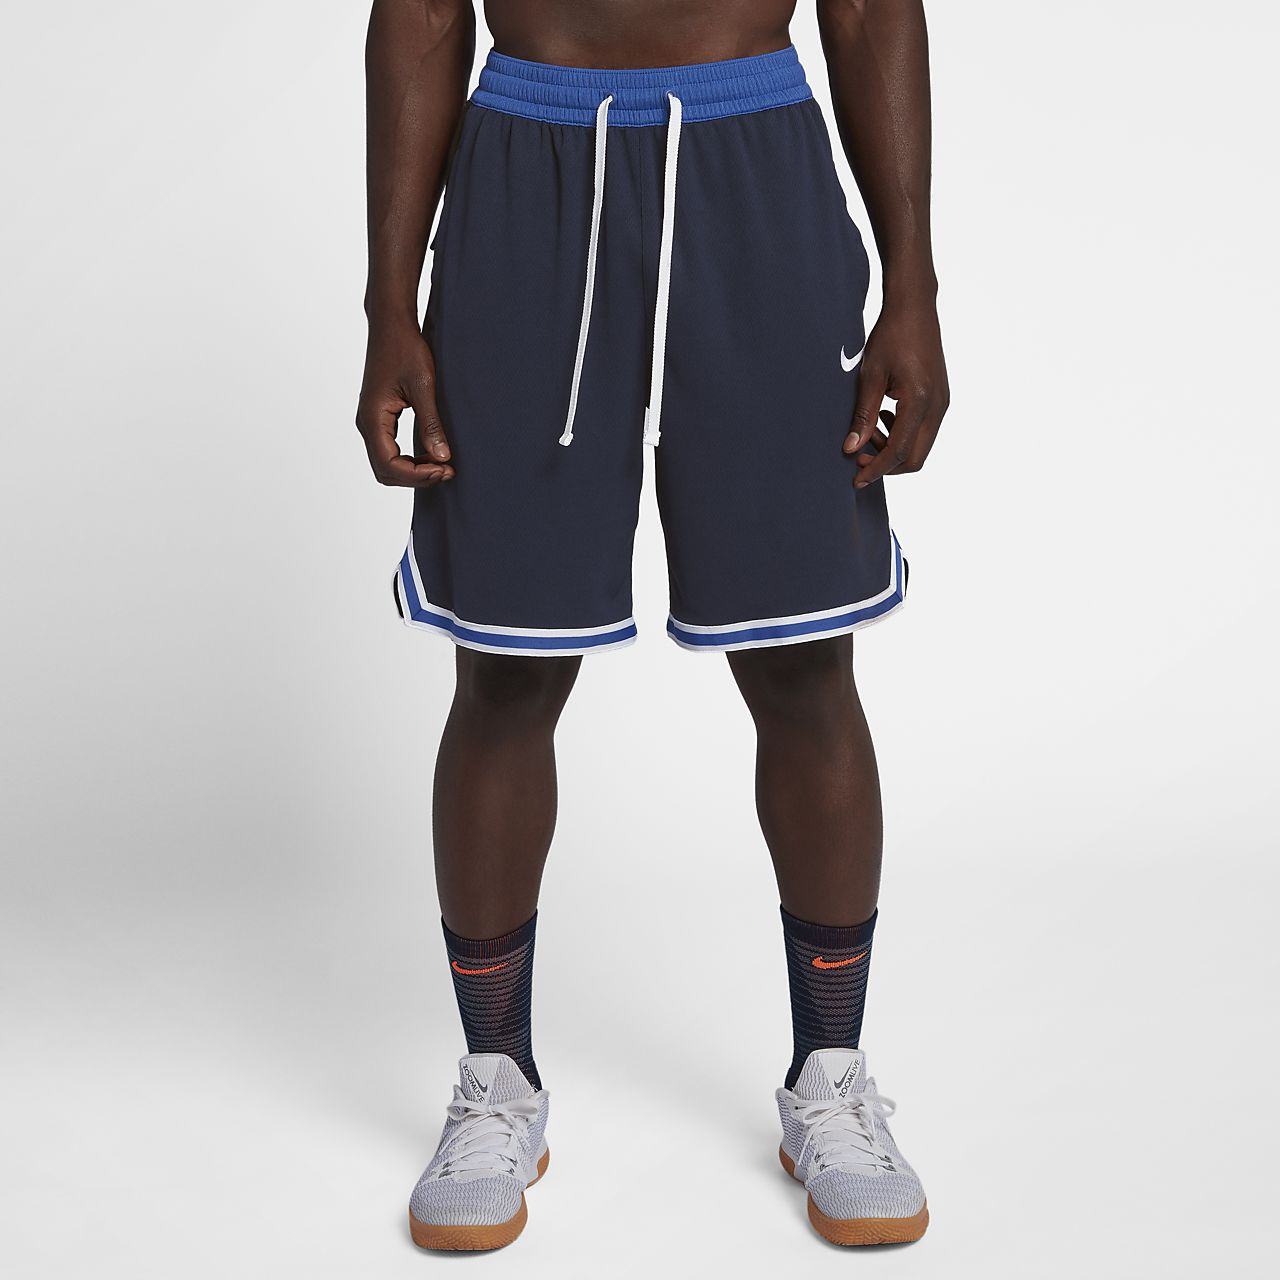 f602c4f2c8f0 Nike Dri-FIT DNA Men s Basketball Shorts. Nike.com HU